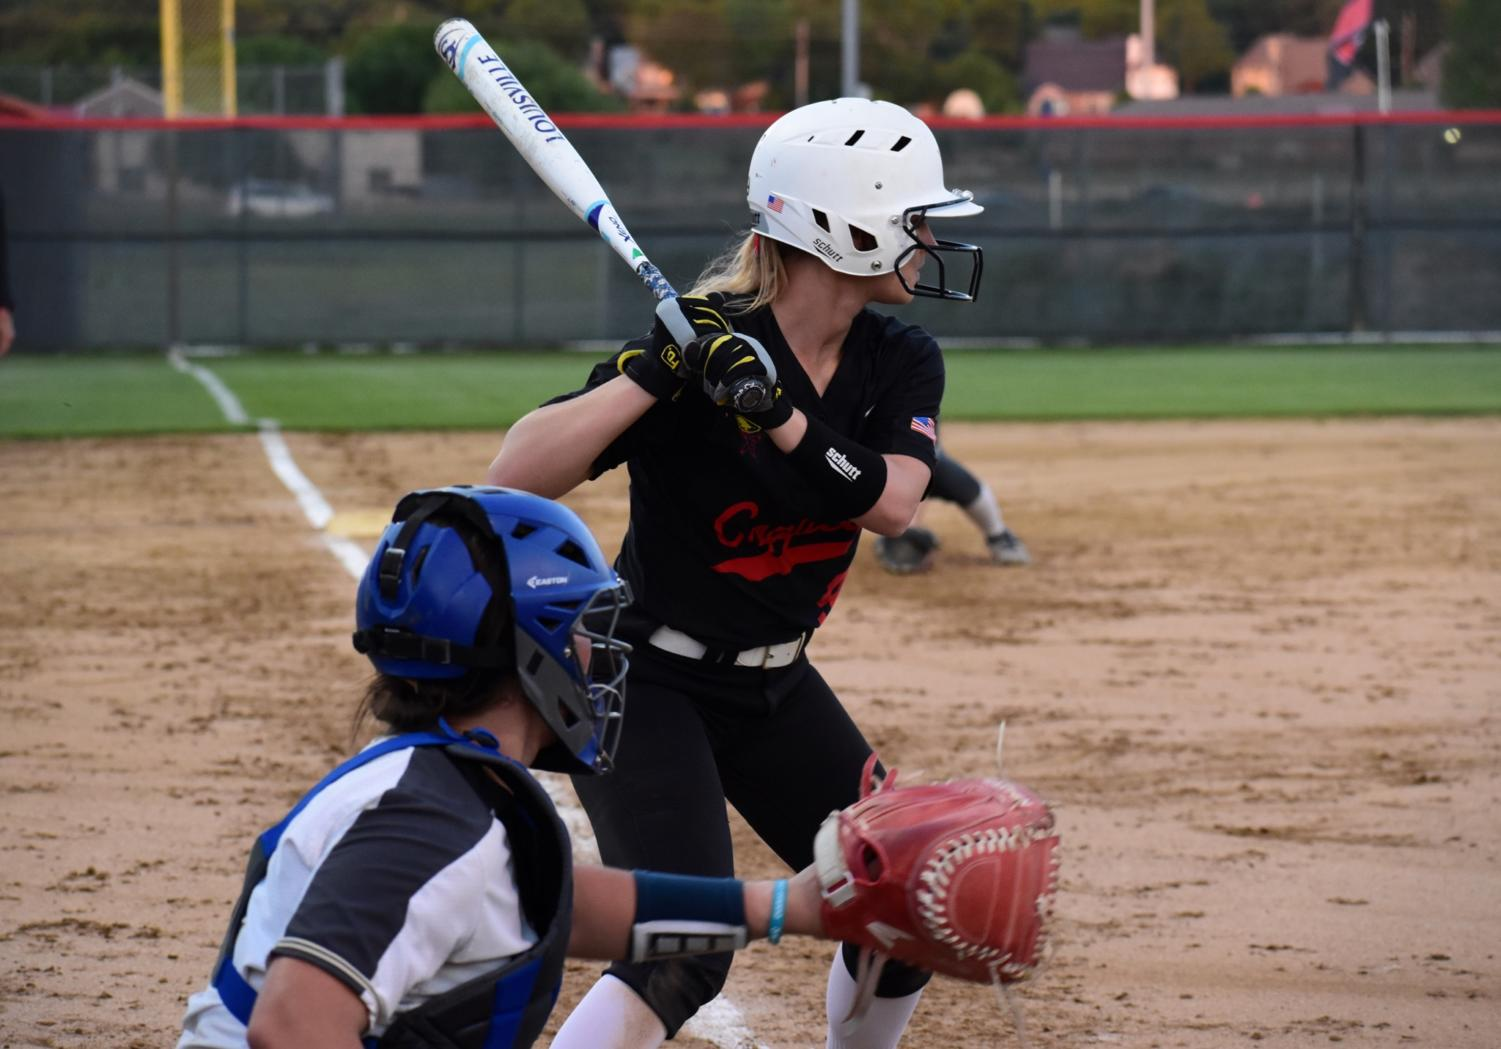 Coppell+senior+third+baseman+Hunter+Handley+focuses+on+the+pitcher+at+the+game+against+Keller+at+the+Colleyville+Heritage+High+School+on+Friday.+The+Cowgirls+lost%2C+5-2%2C+as+their+season+ended+in+the+first+round+of+playoffs.